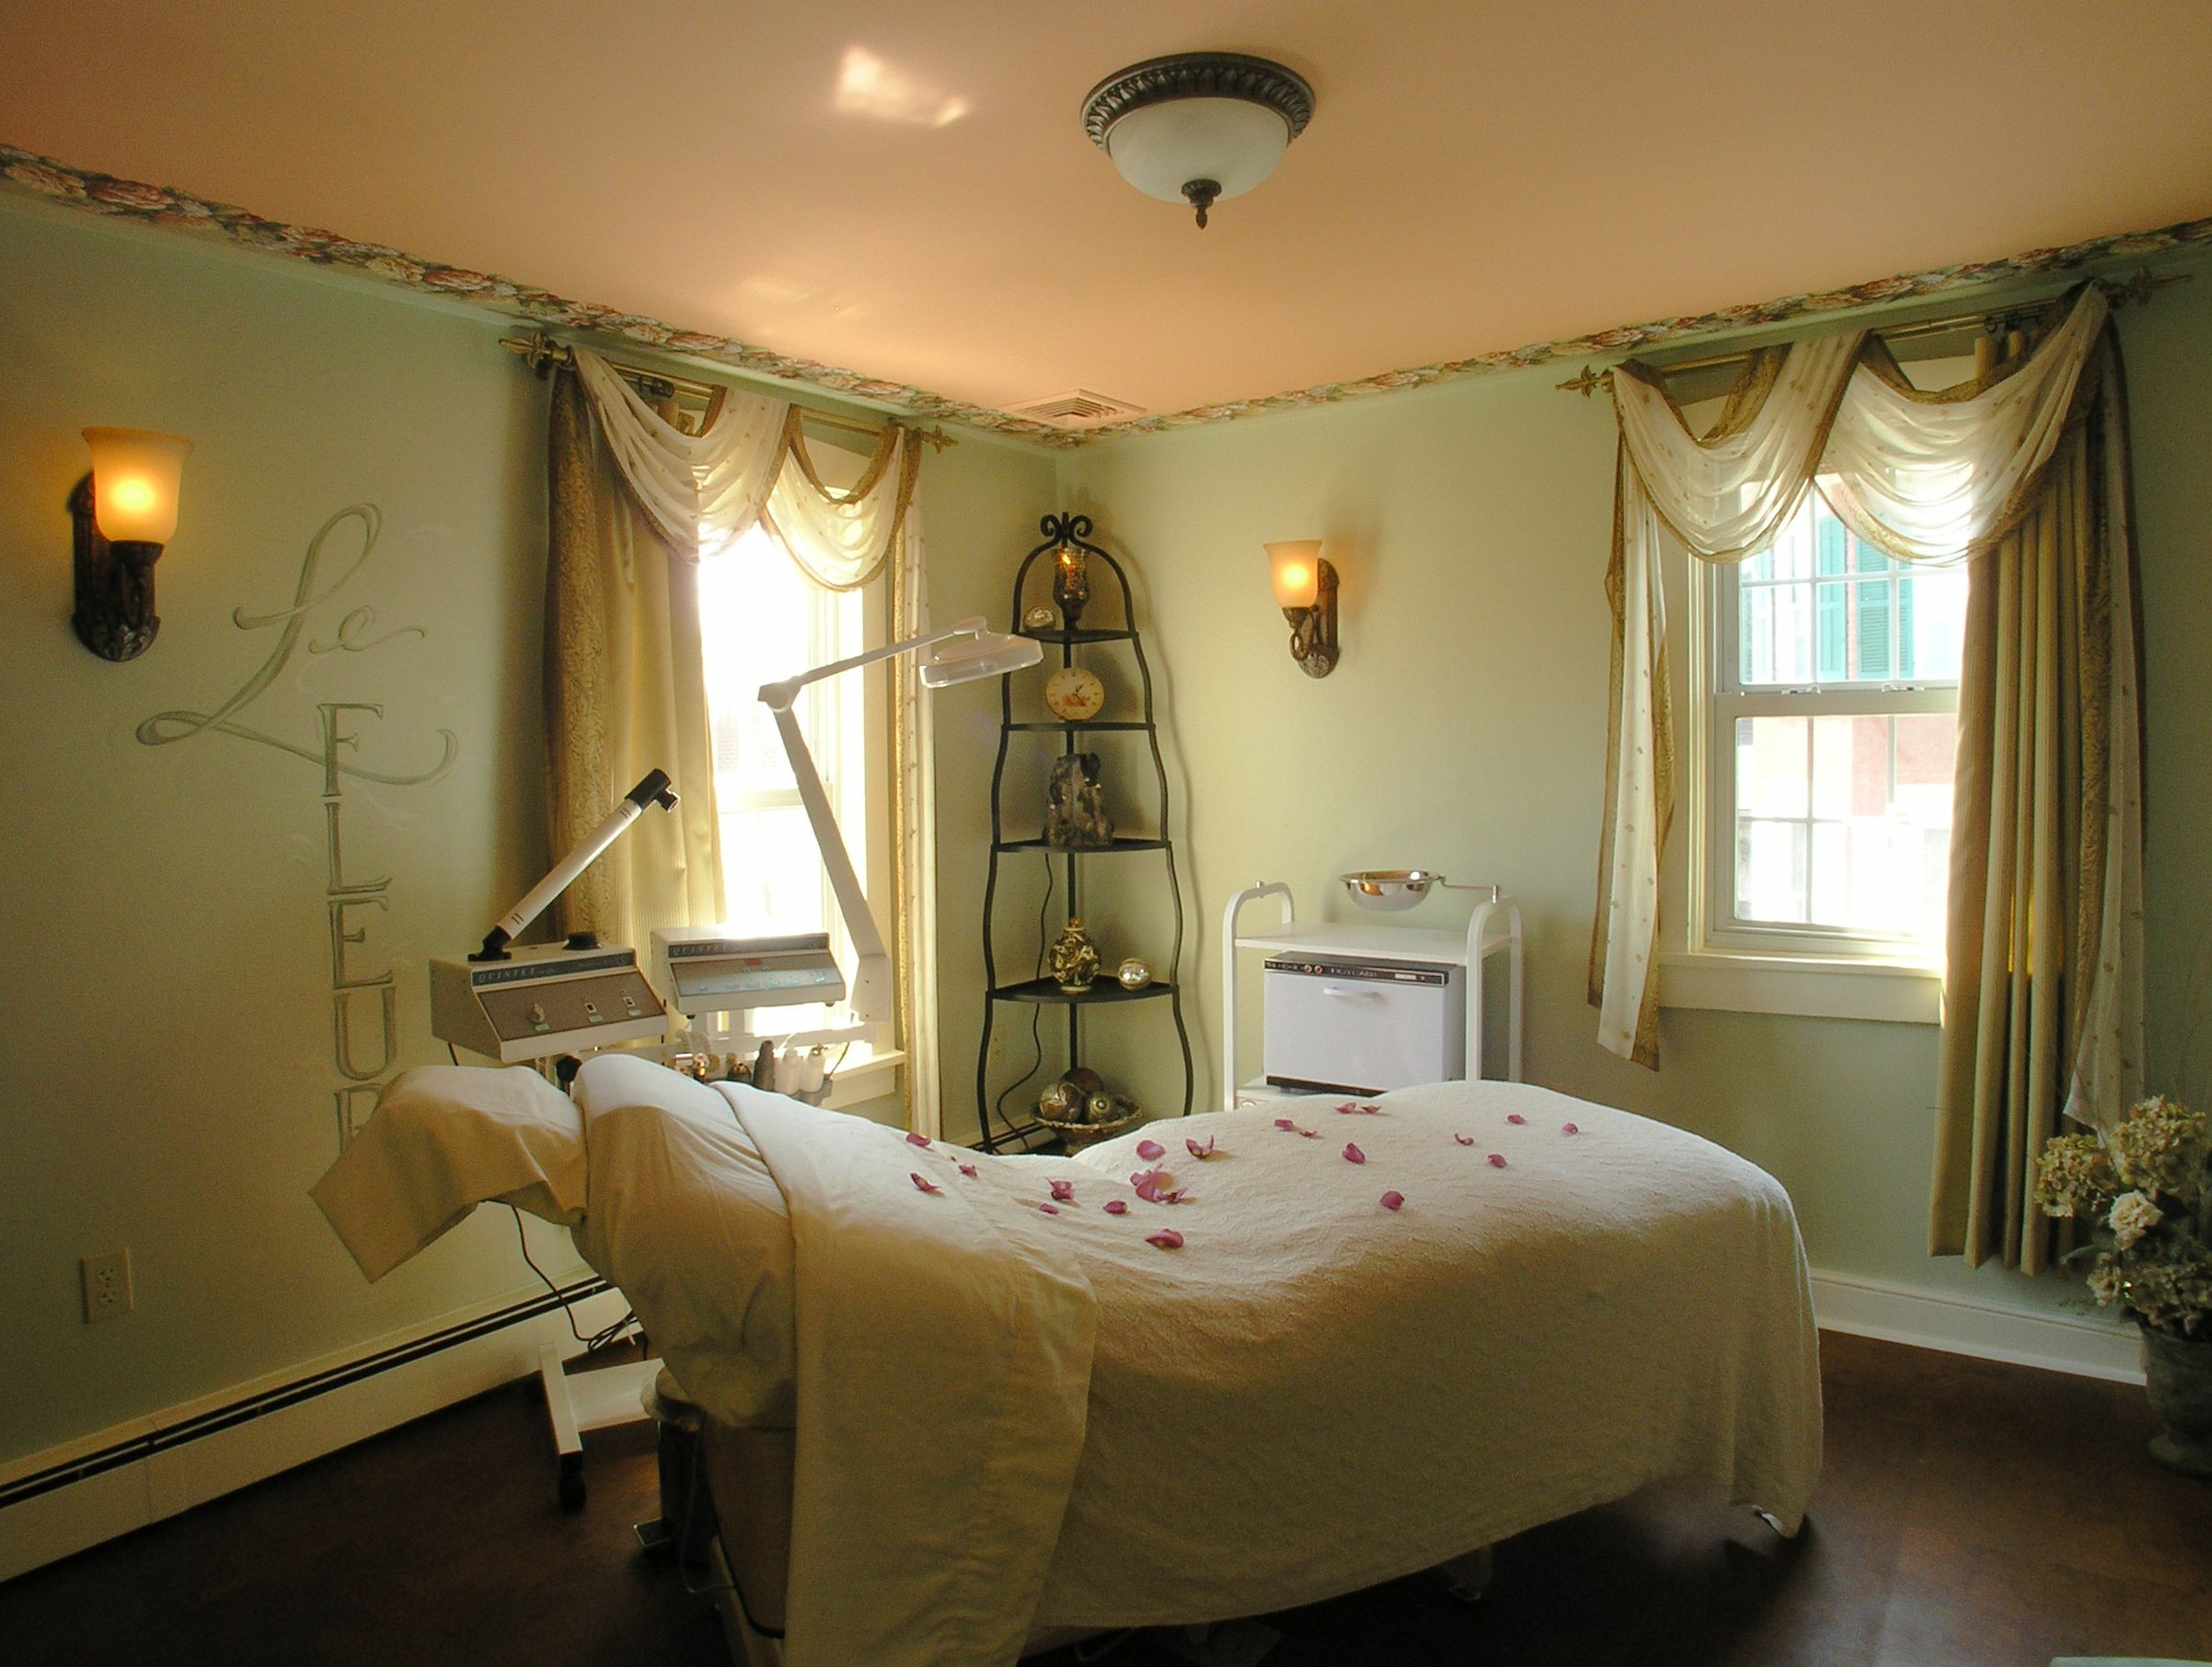 Day Spa  Massage Therapy Room  Esthetician Room  Aesthetician Room  Esthetics -8636